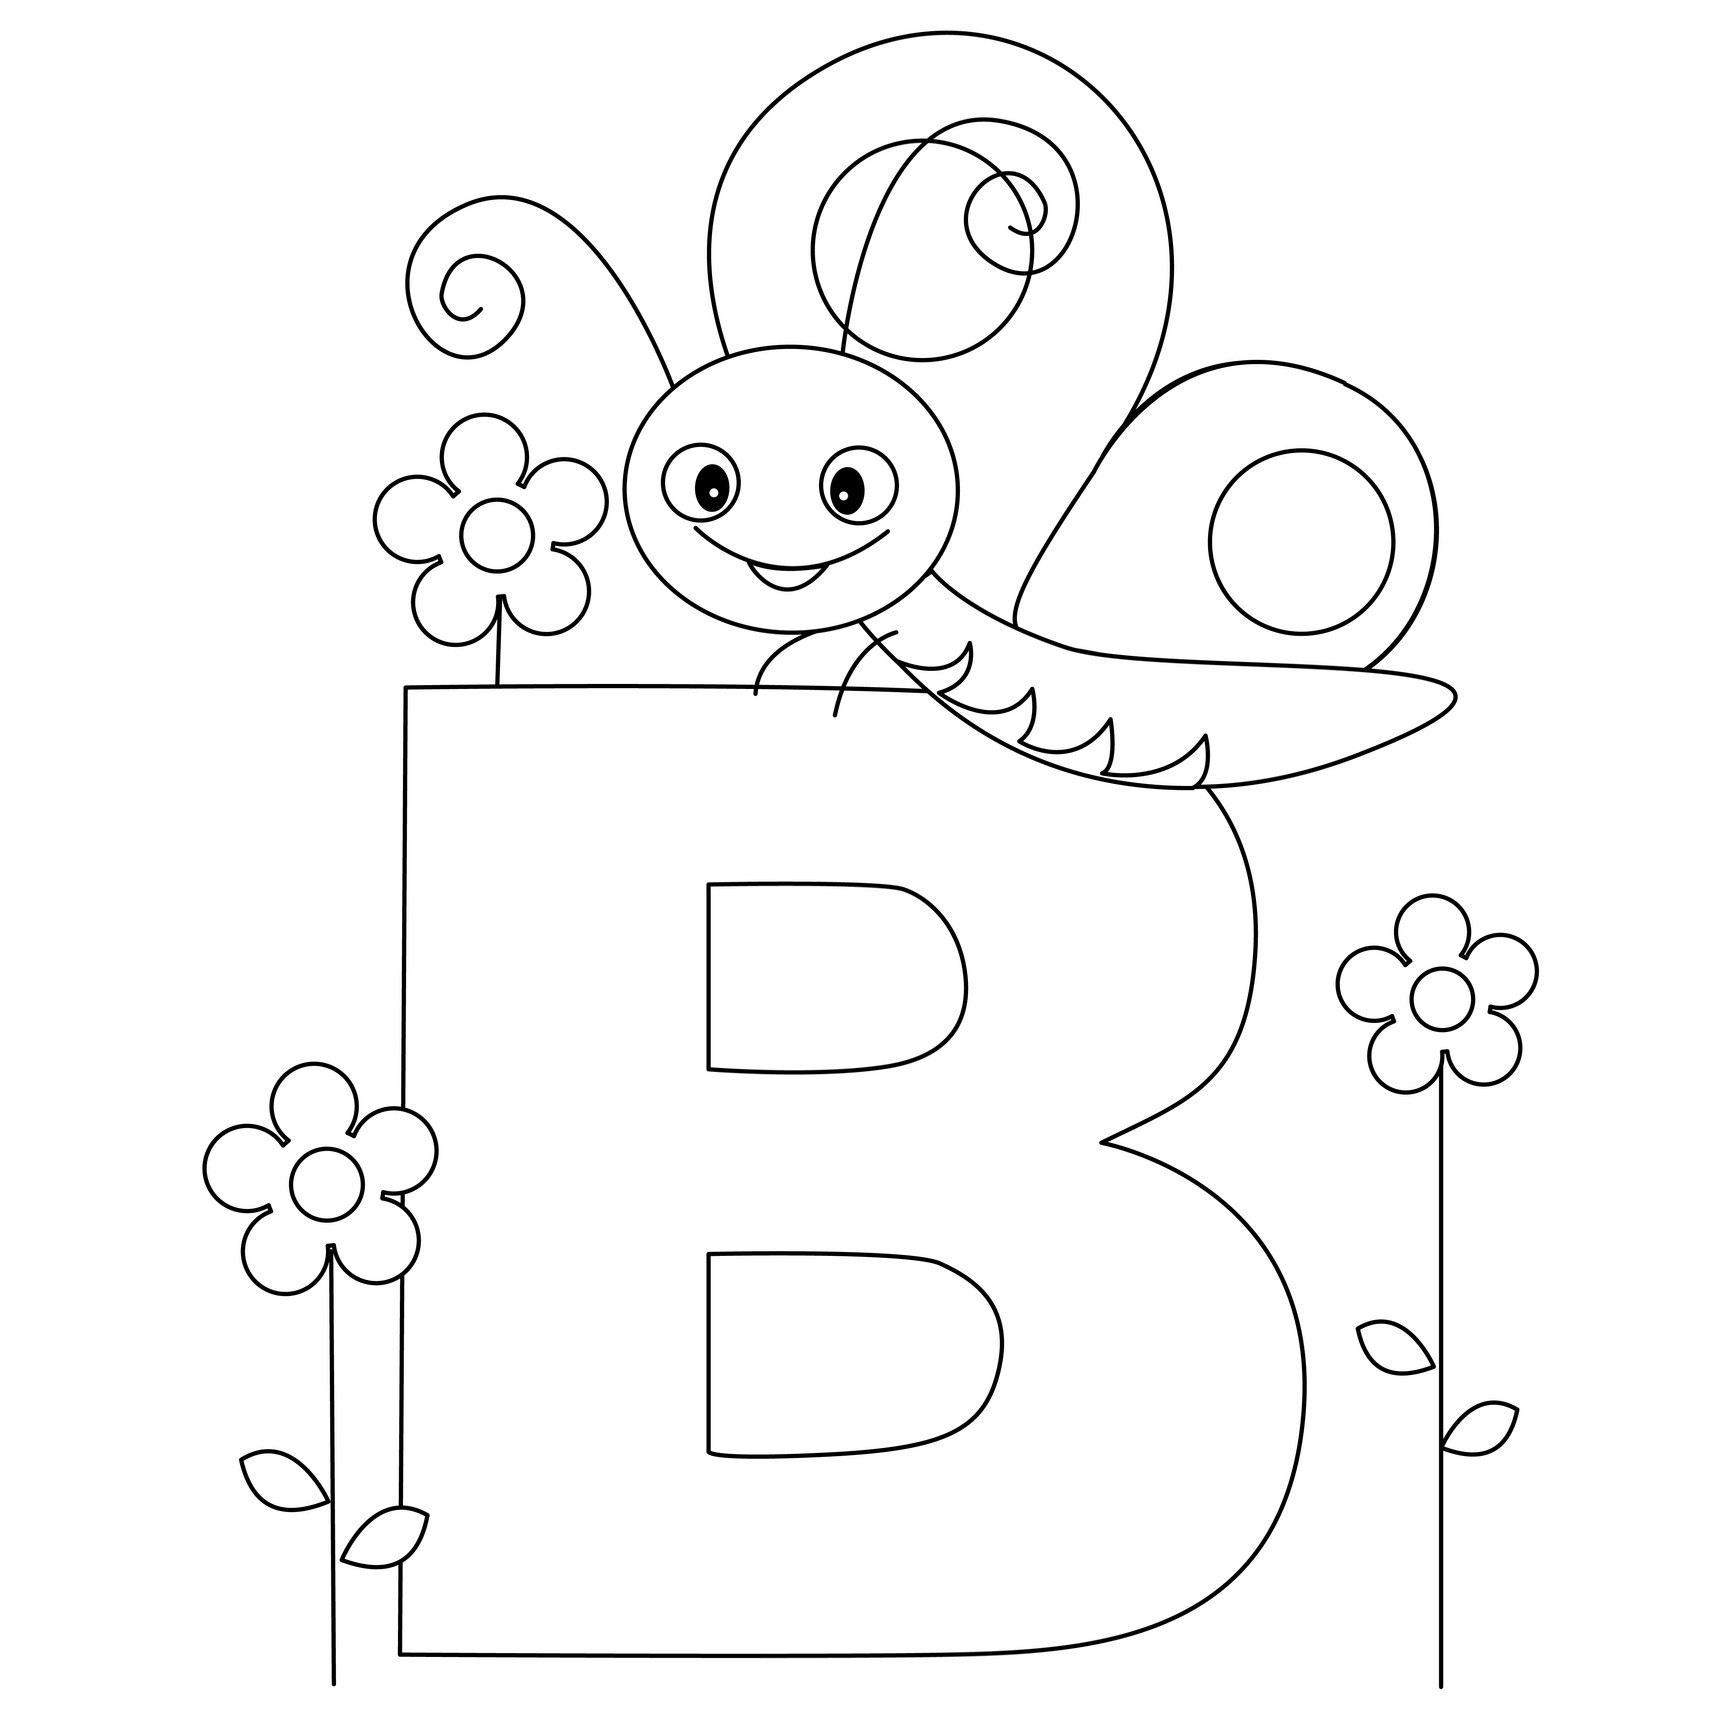 Alphabet i coloring pages - Alphabet Coloring Pages Letter B